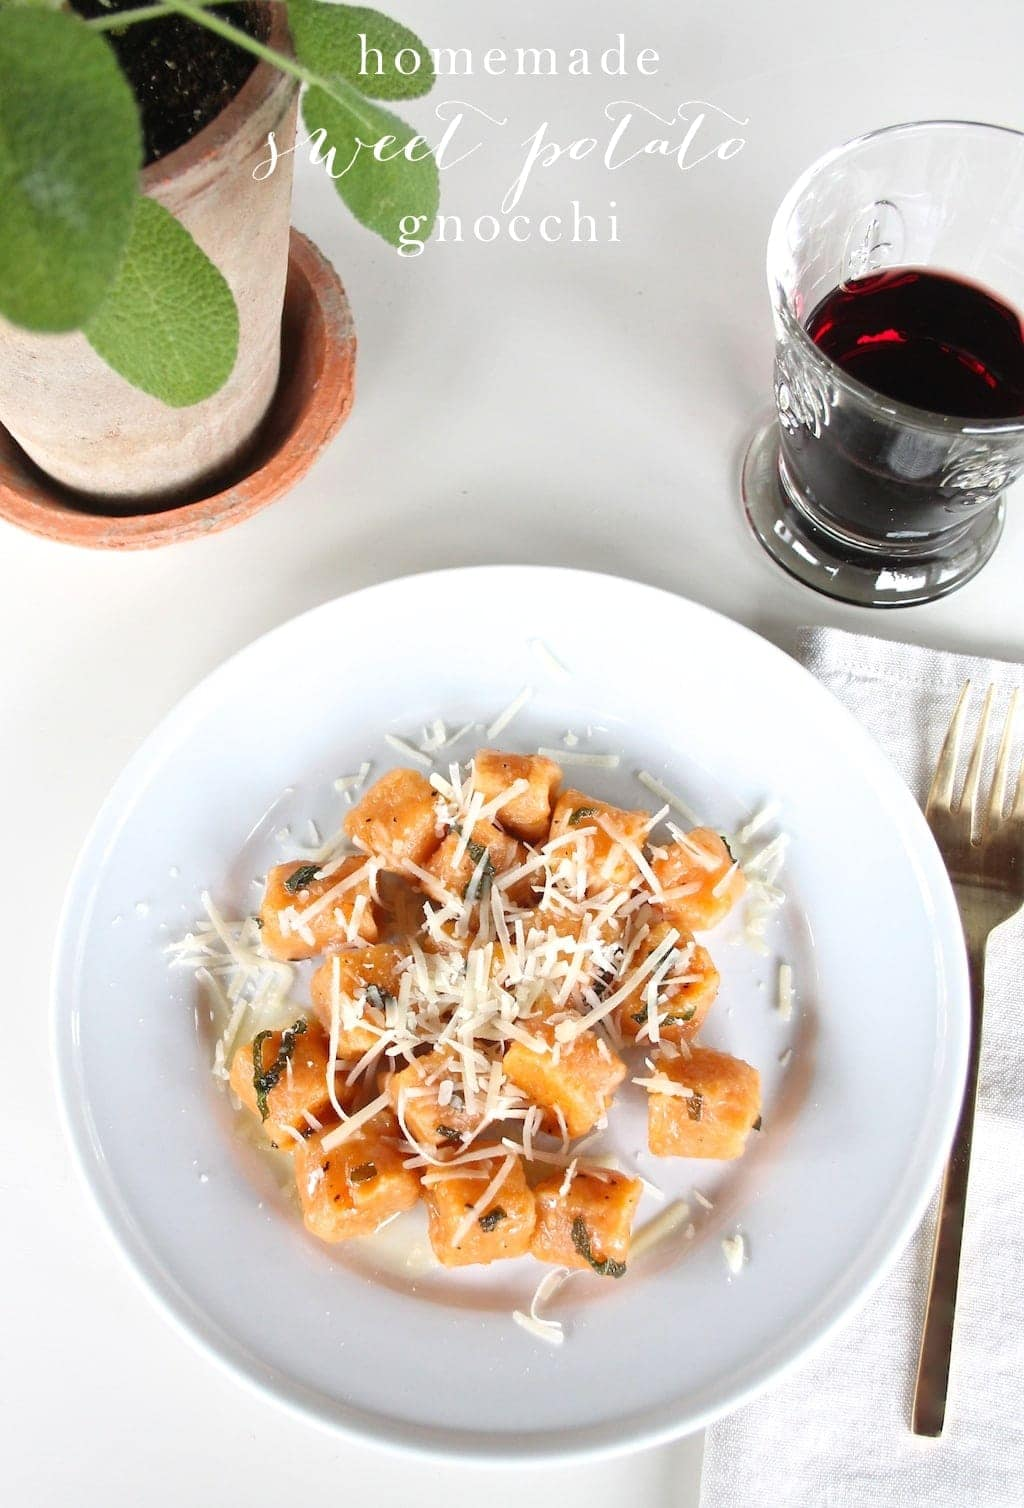 Easy homemade sweet potato gnocchi recipe